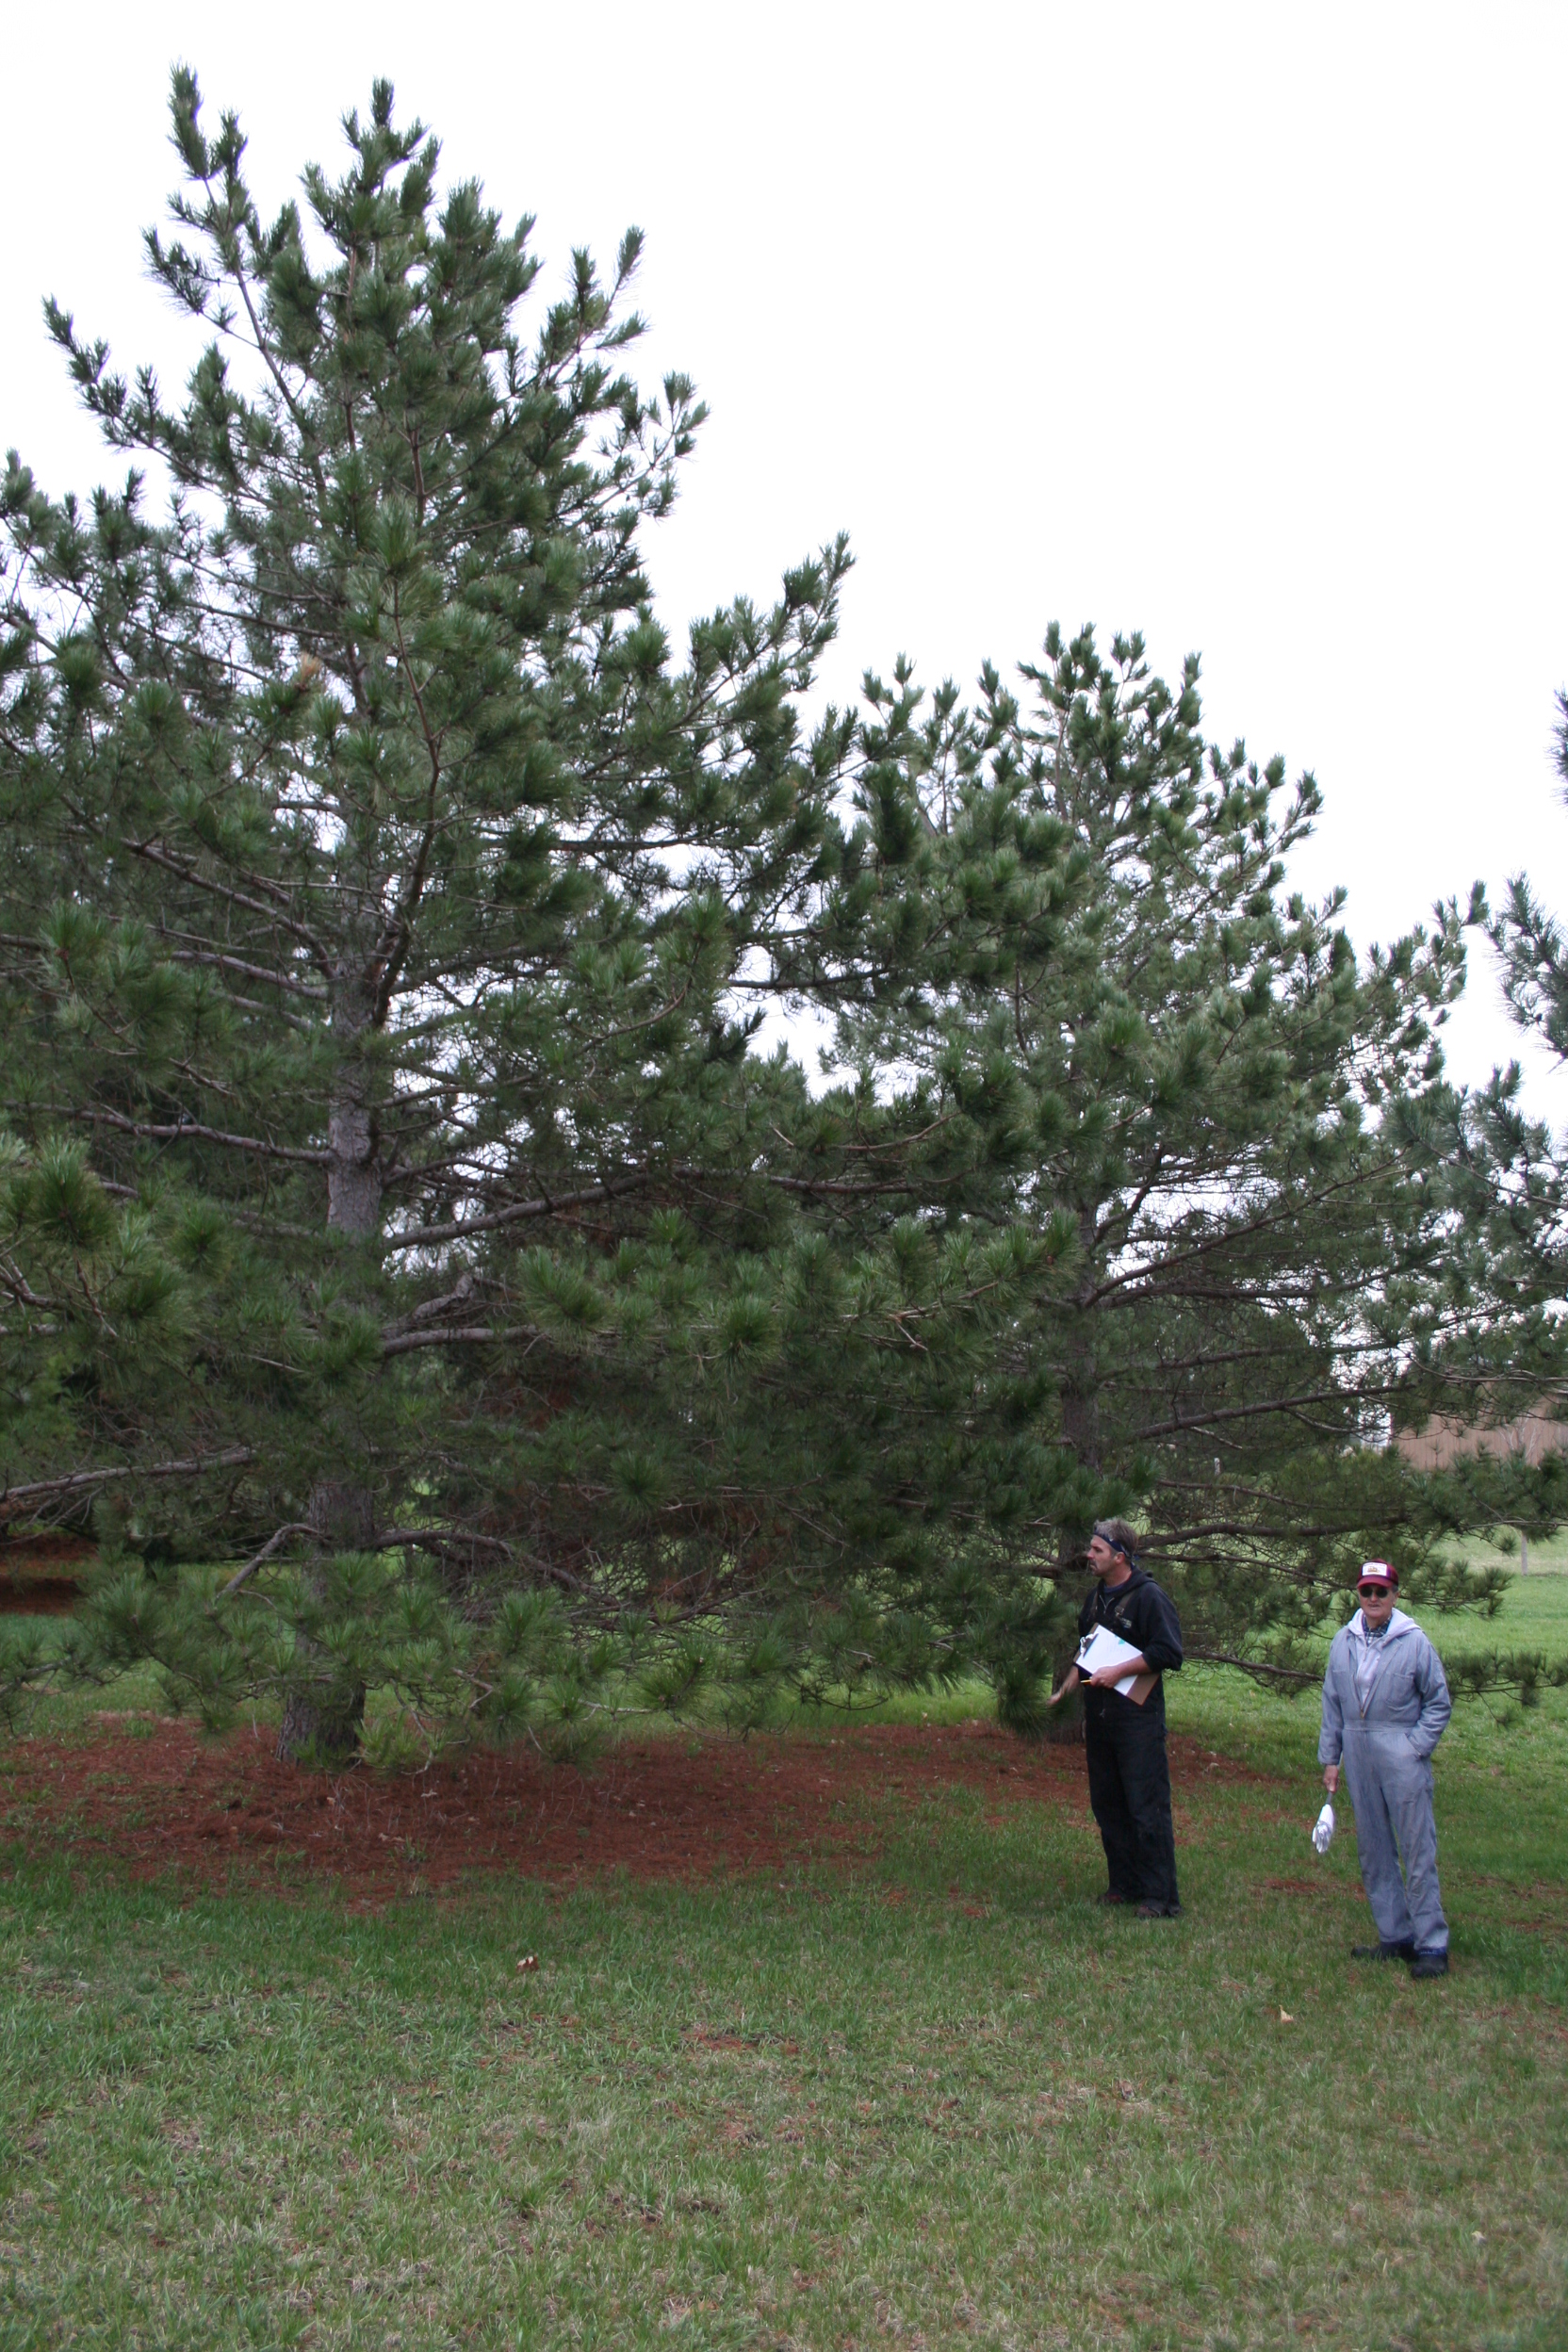 People standing next to a red pine.